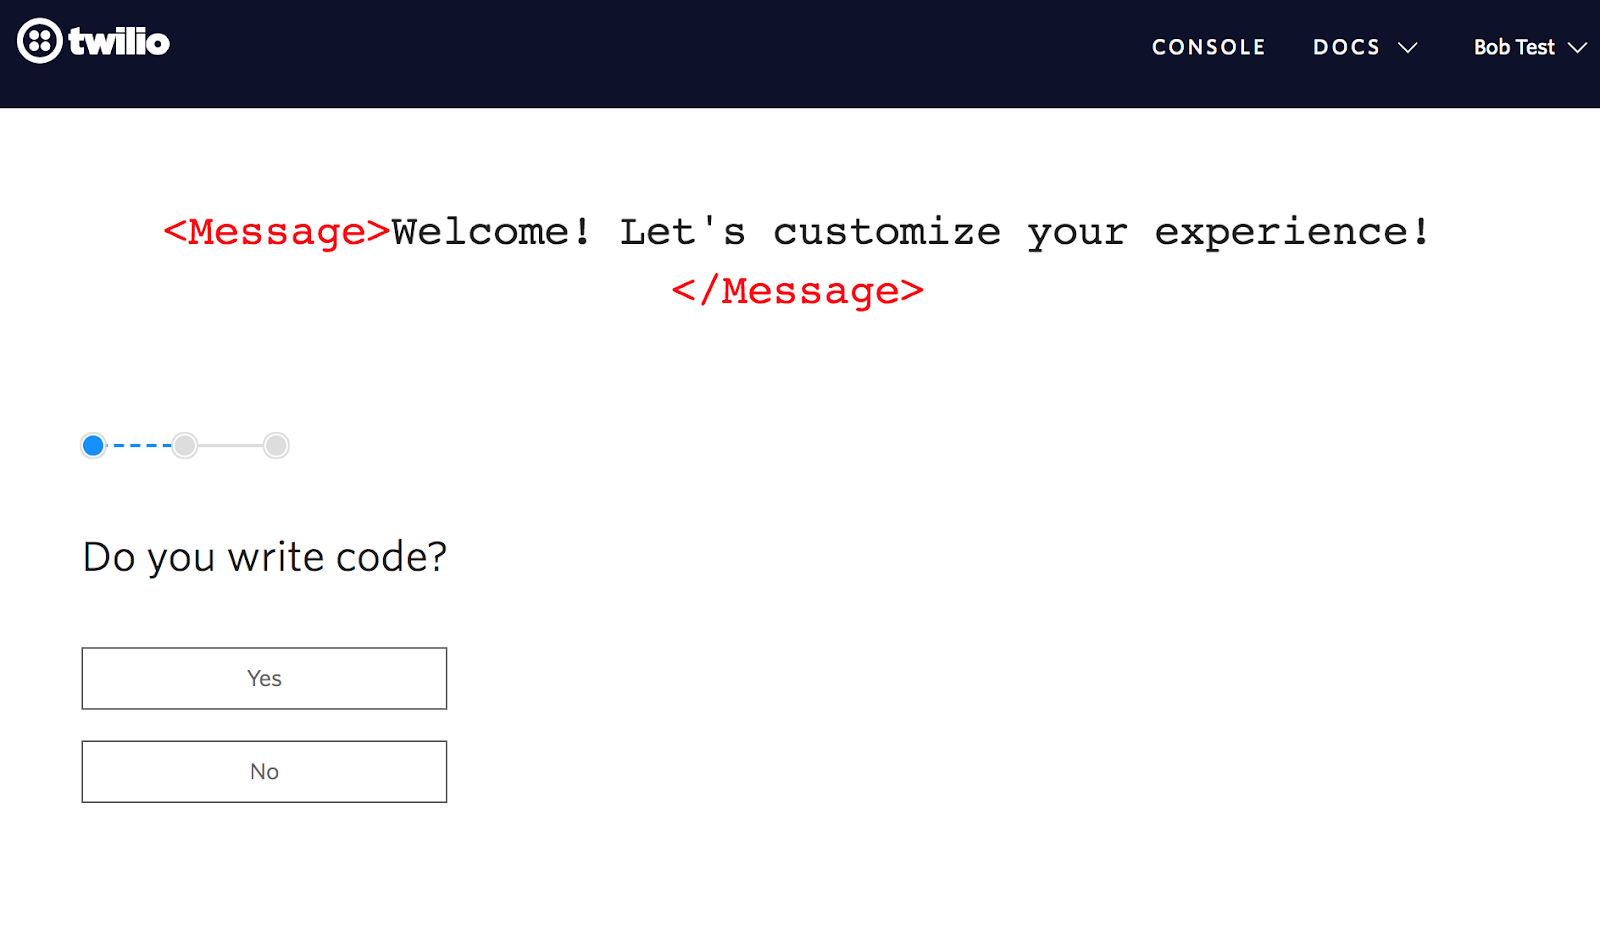 twilio user onboarding flow for developers pstep 1 personalizing question